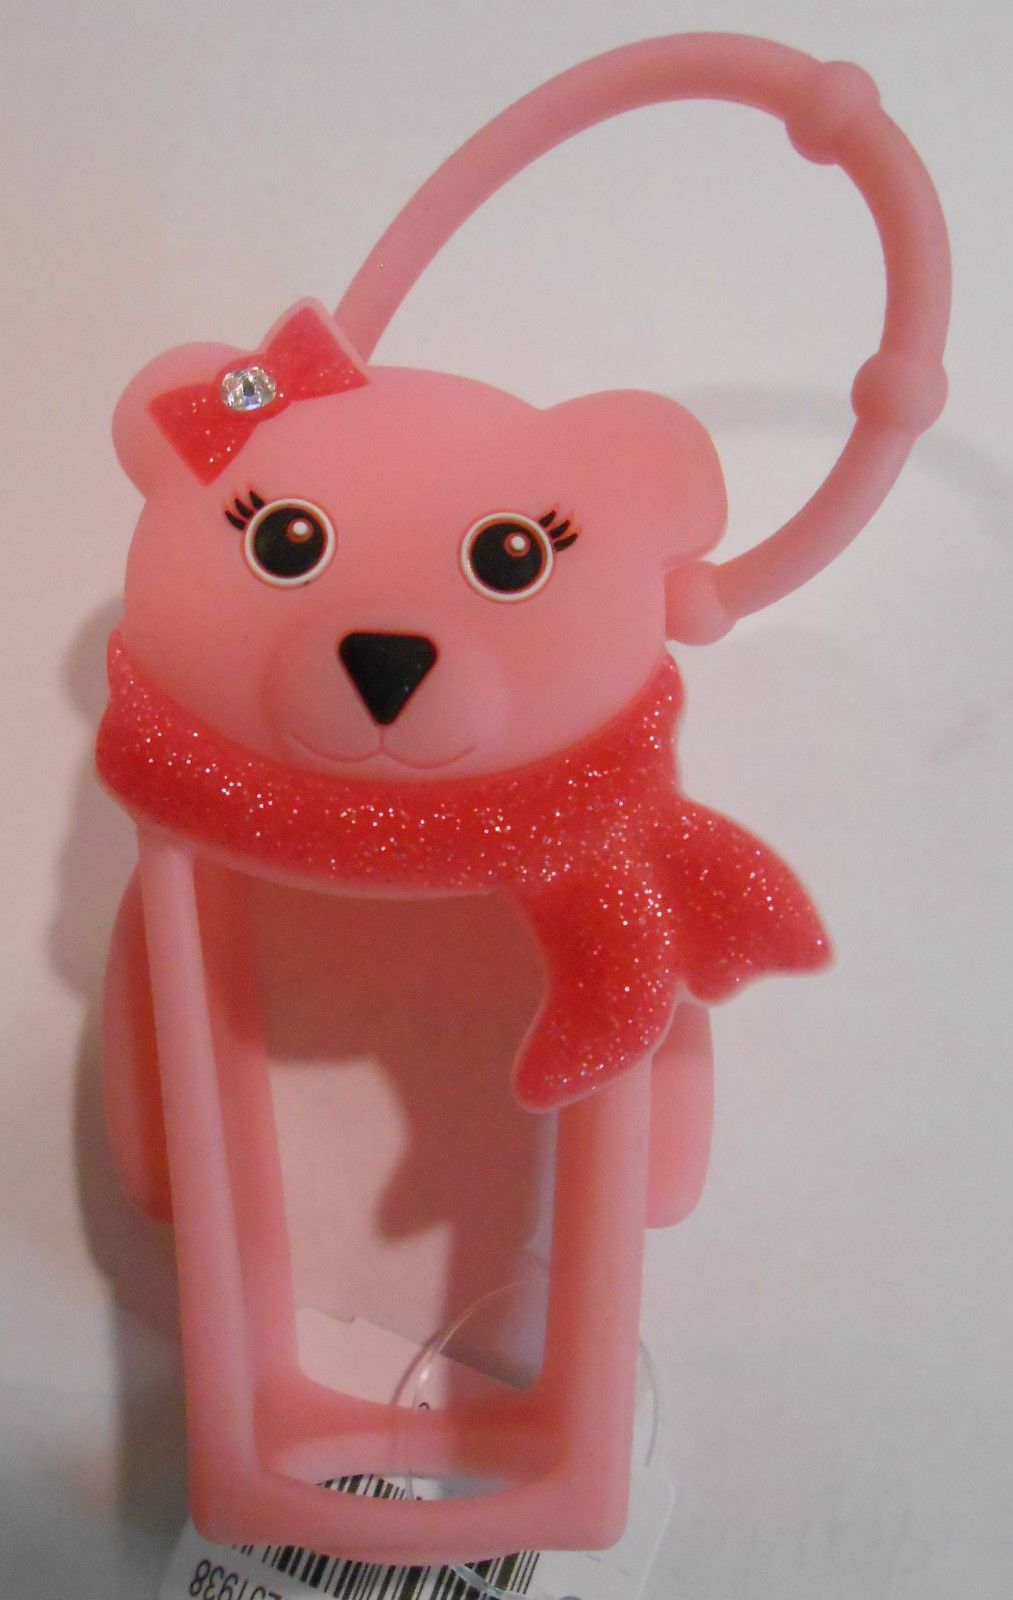 Bath Body Works Pocketbac Holder Pink Holiday Bear For Hand